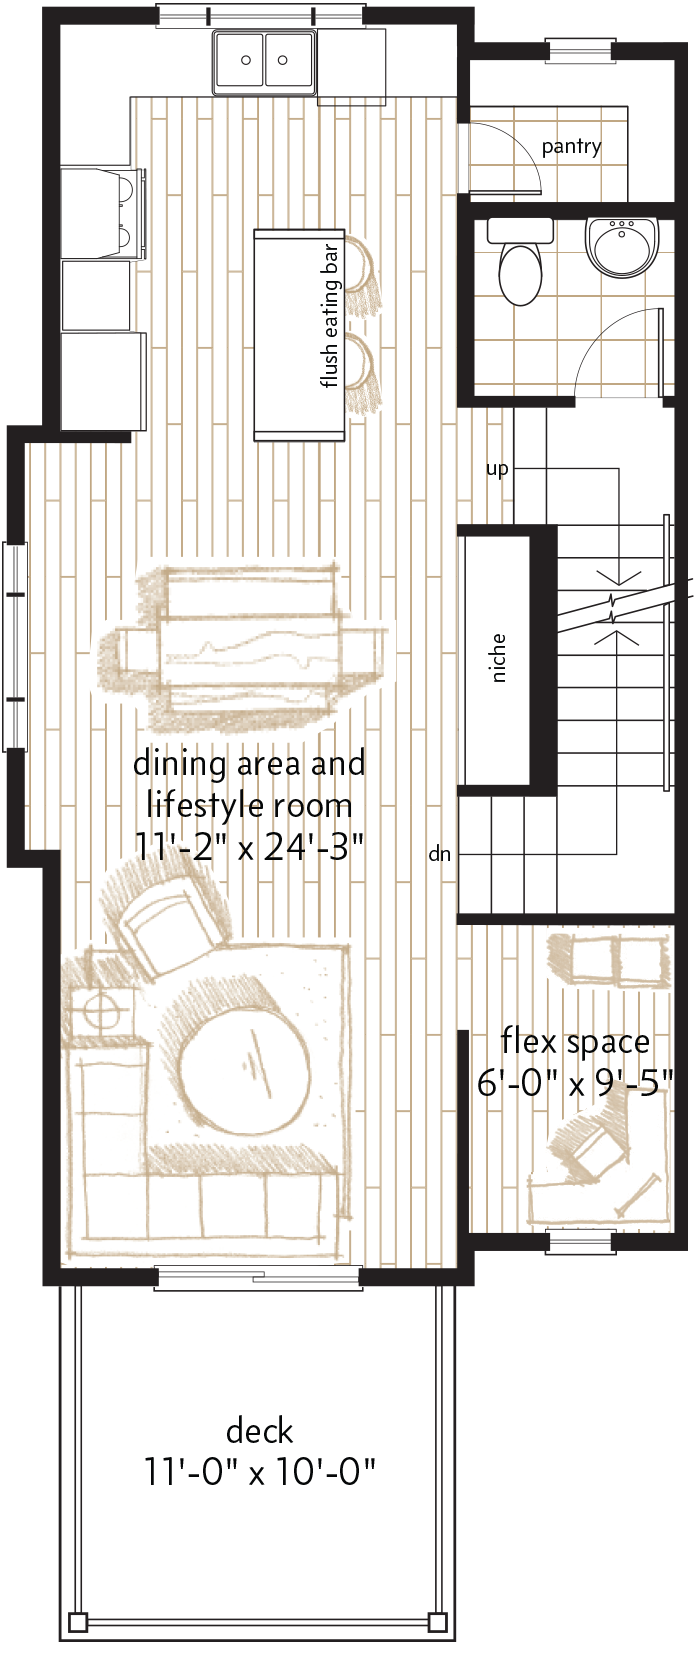 MAIN LEVEL  |  653 SQ. FT.